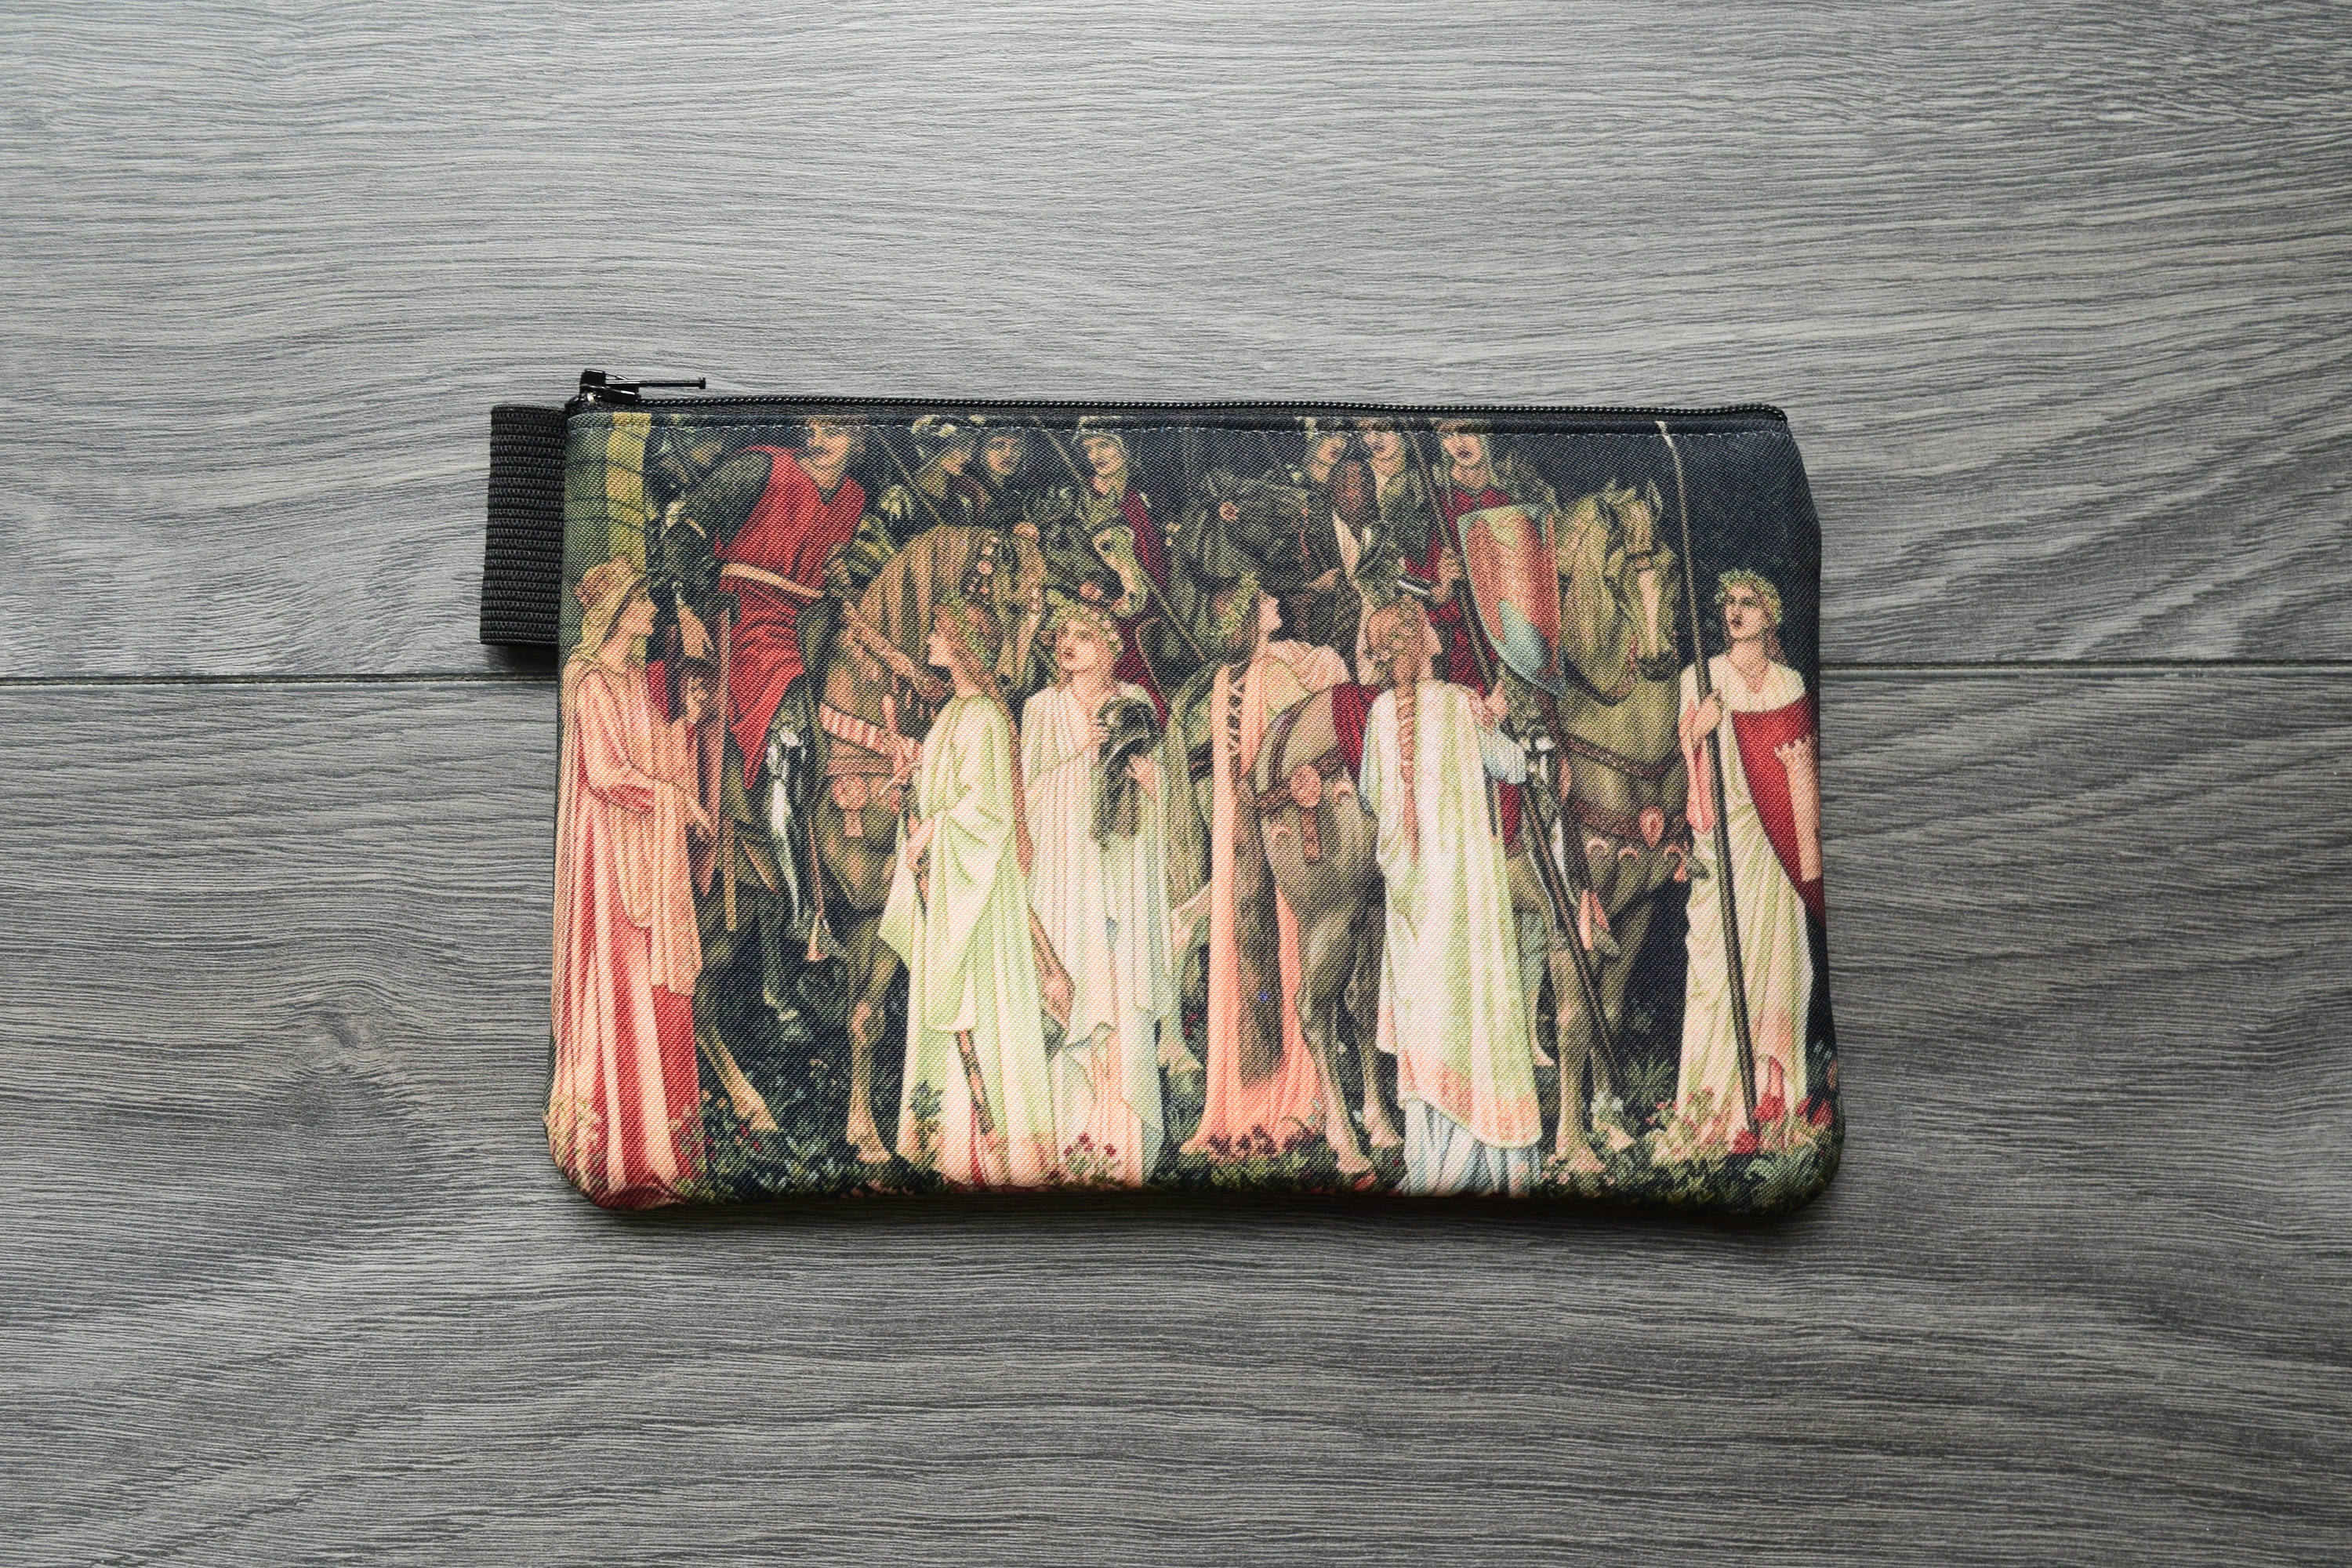 the arming and departure of the knights  - romanticism - lined twill pencil case - edward burne-jones, 1891 - 1894